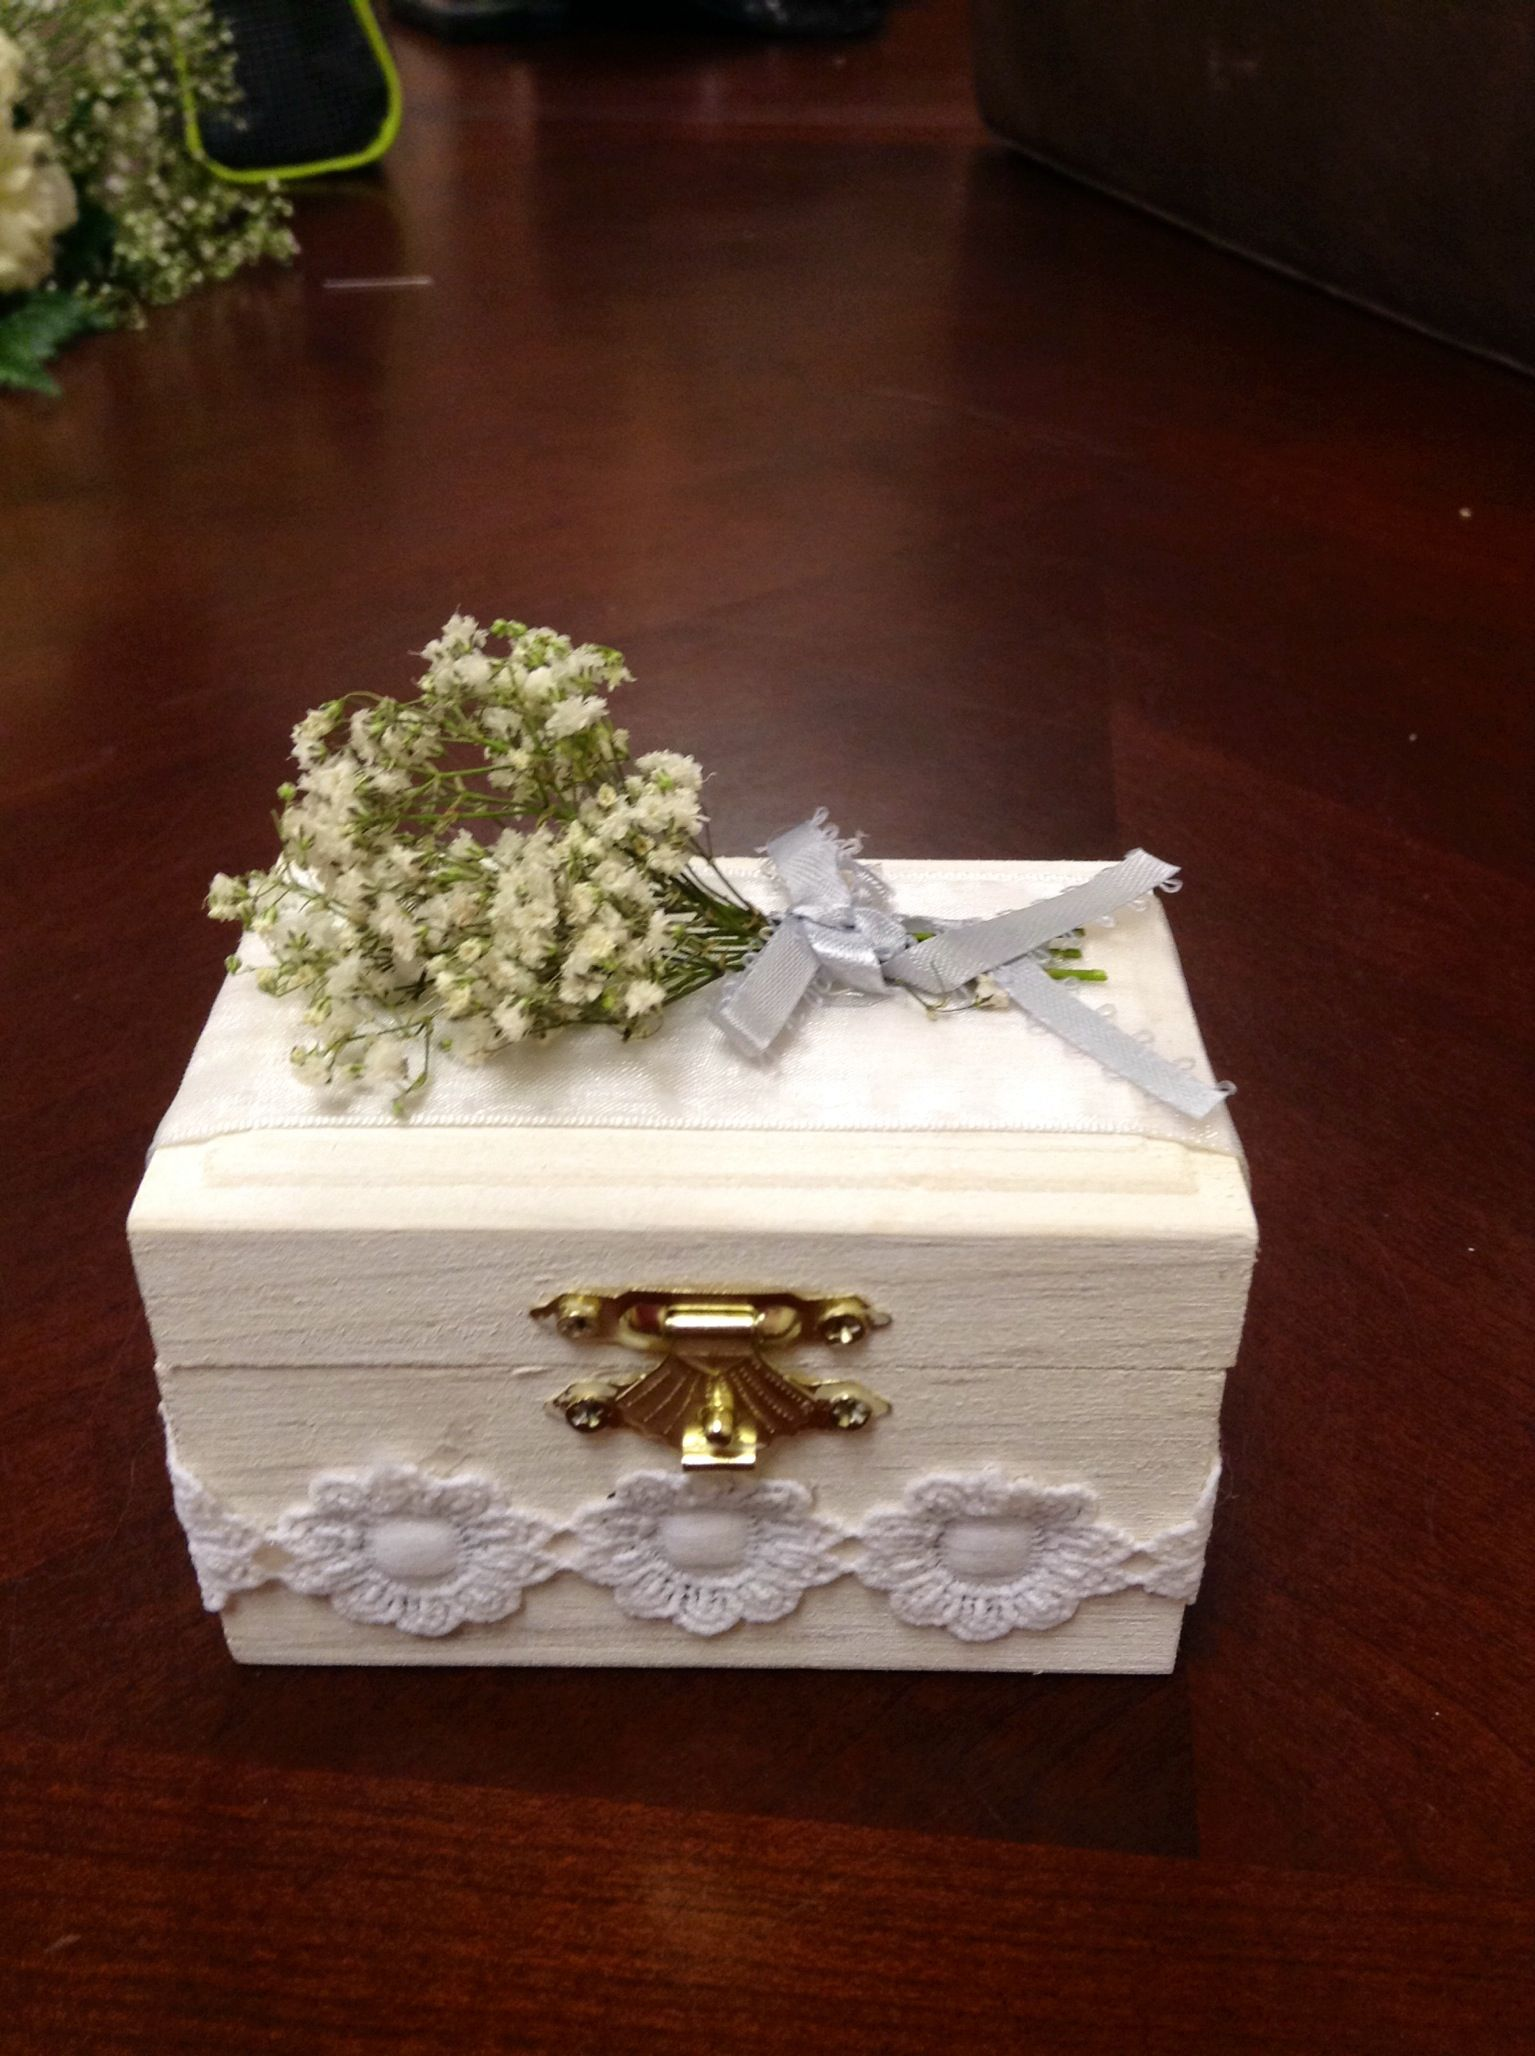 Wedding Ring Box for my brother's wedding: small chest from a craft store white washed with acrylic paint, adorned with lace given to me by my dear friend Jeanne.